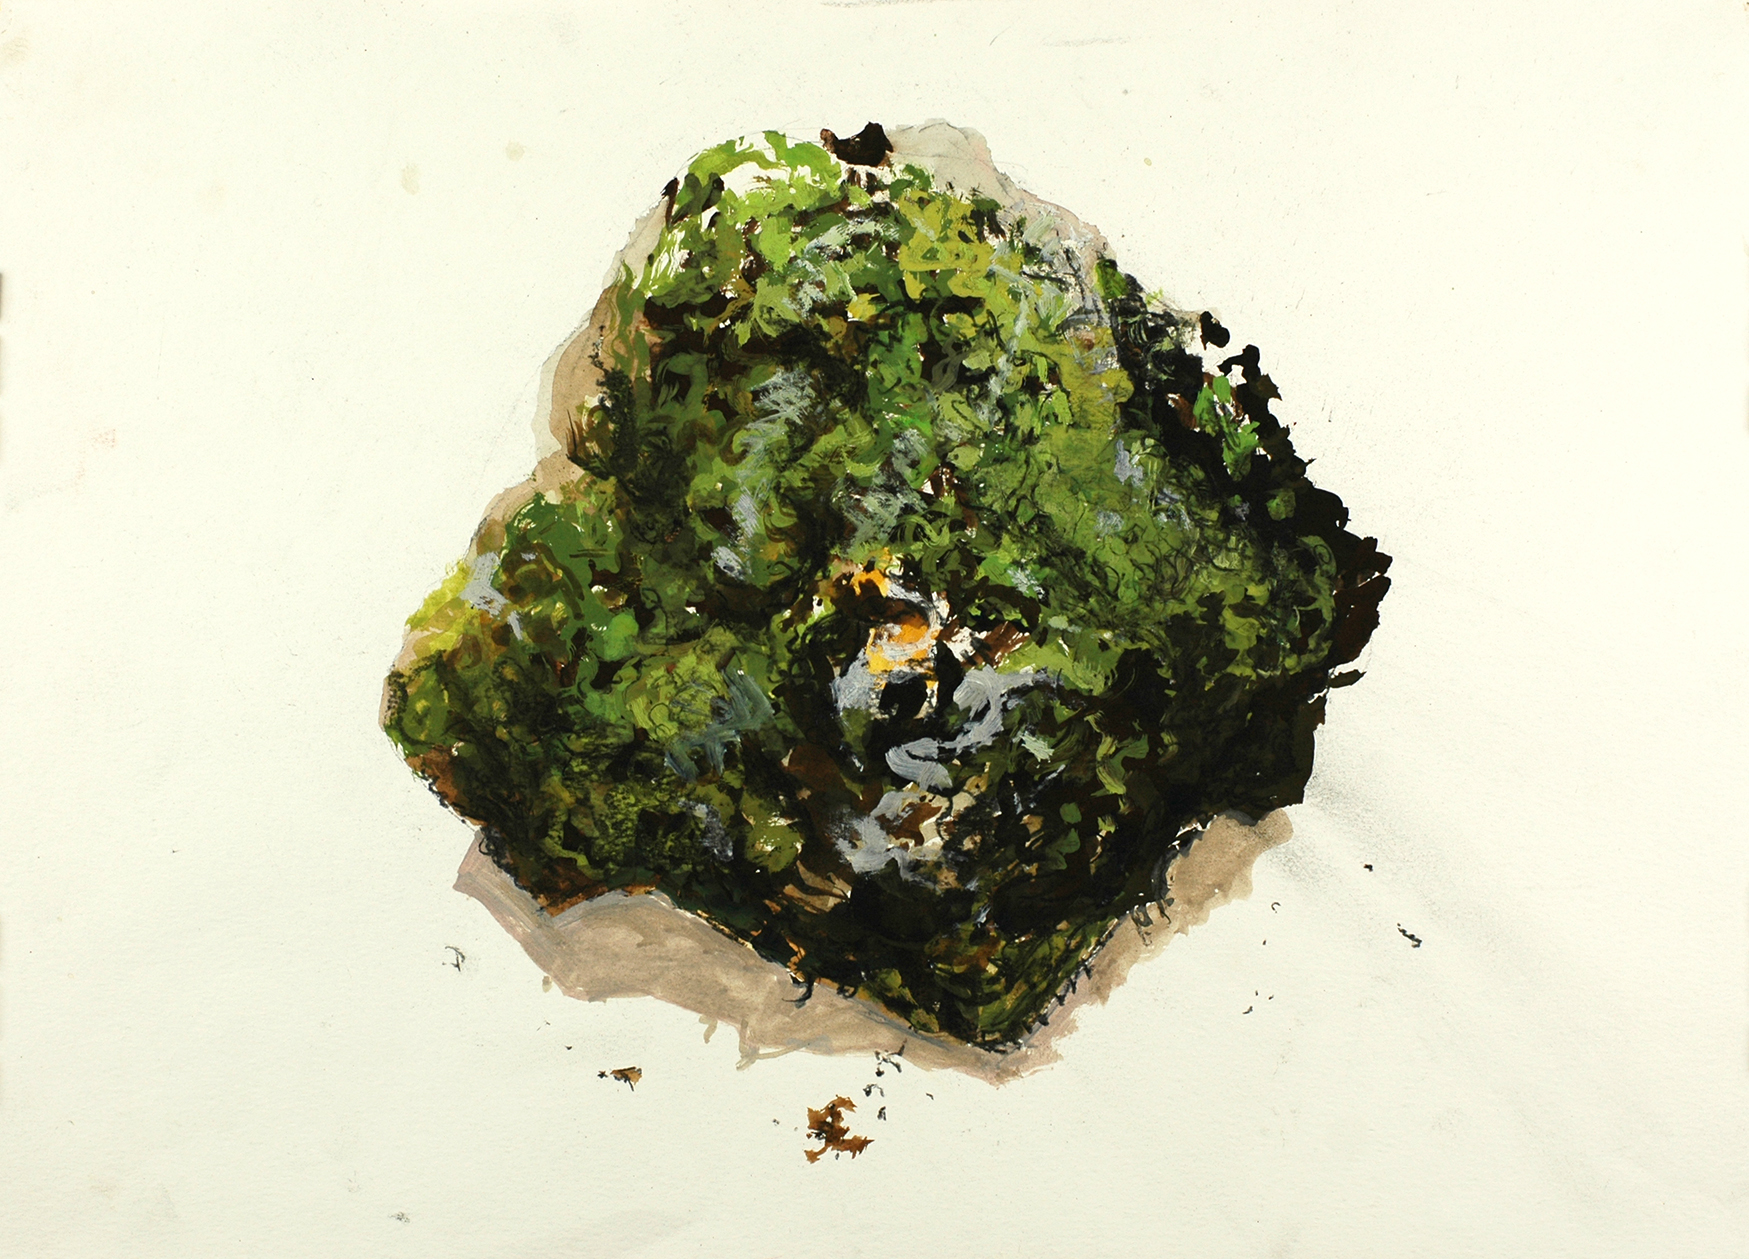 Quartz and Lichen, 2013